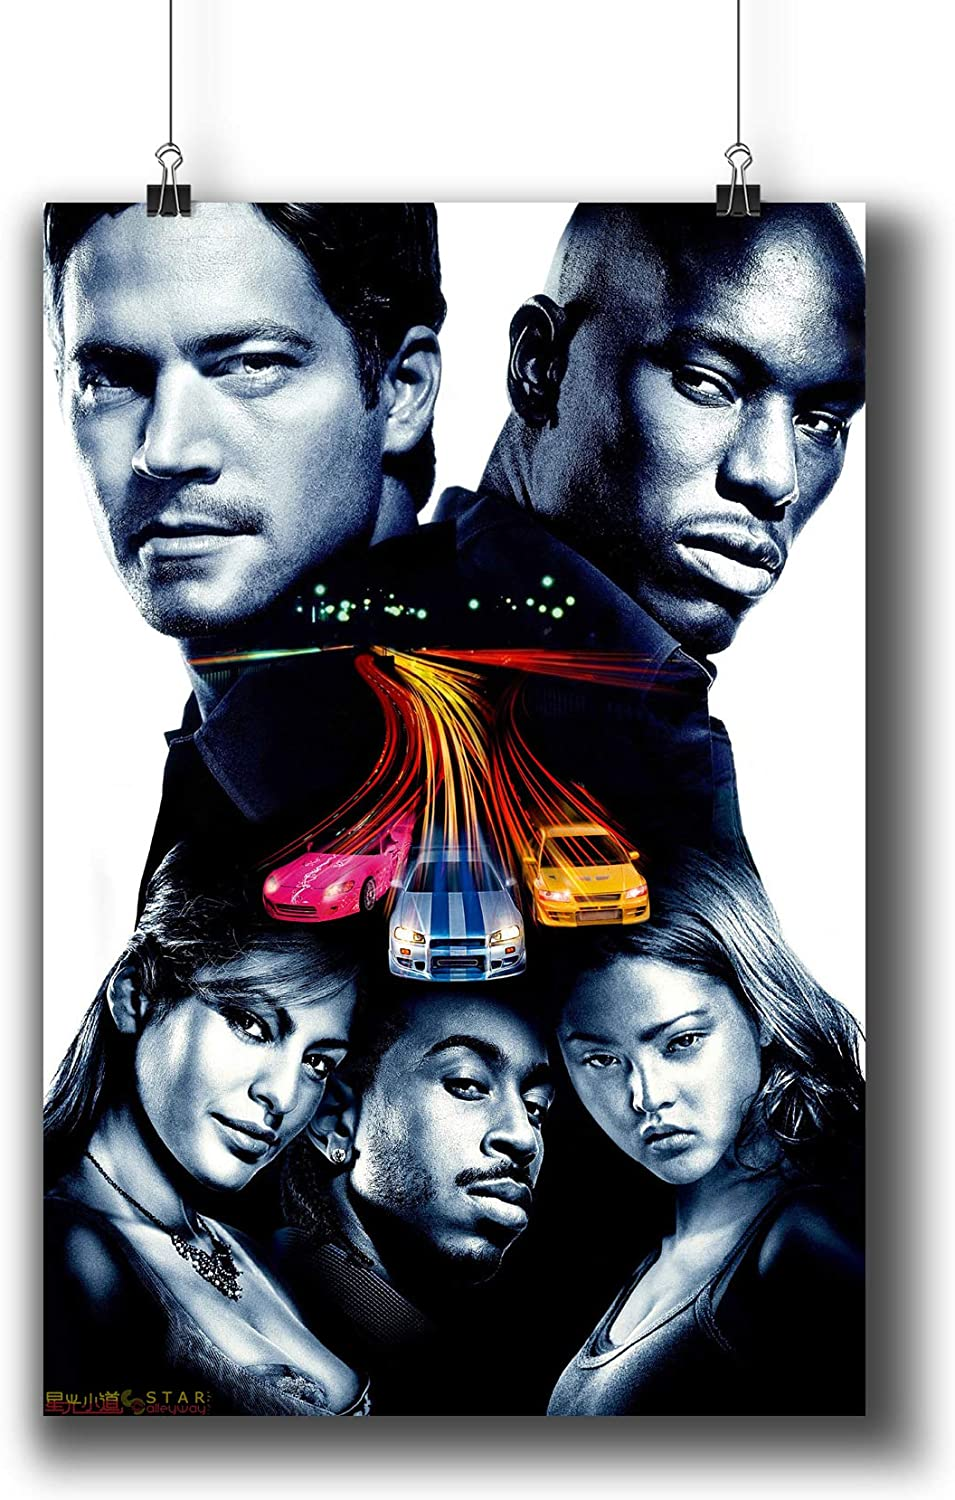 Amazon Com 2 Fast 2 Furious 2003 Movie Poster Small Prints 423 202 Wall Art Decor For Dorm Bedroom Living Room A3 11x17inch 29x42cm Posters Prints